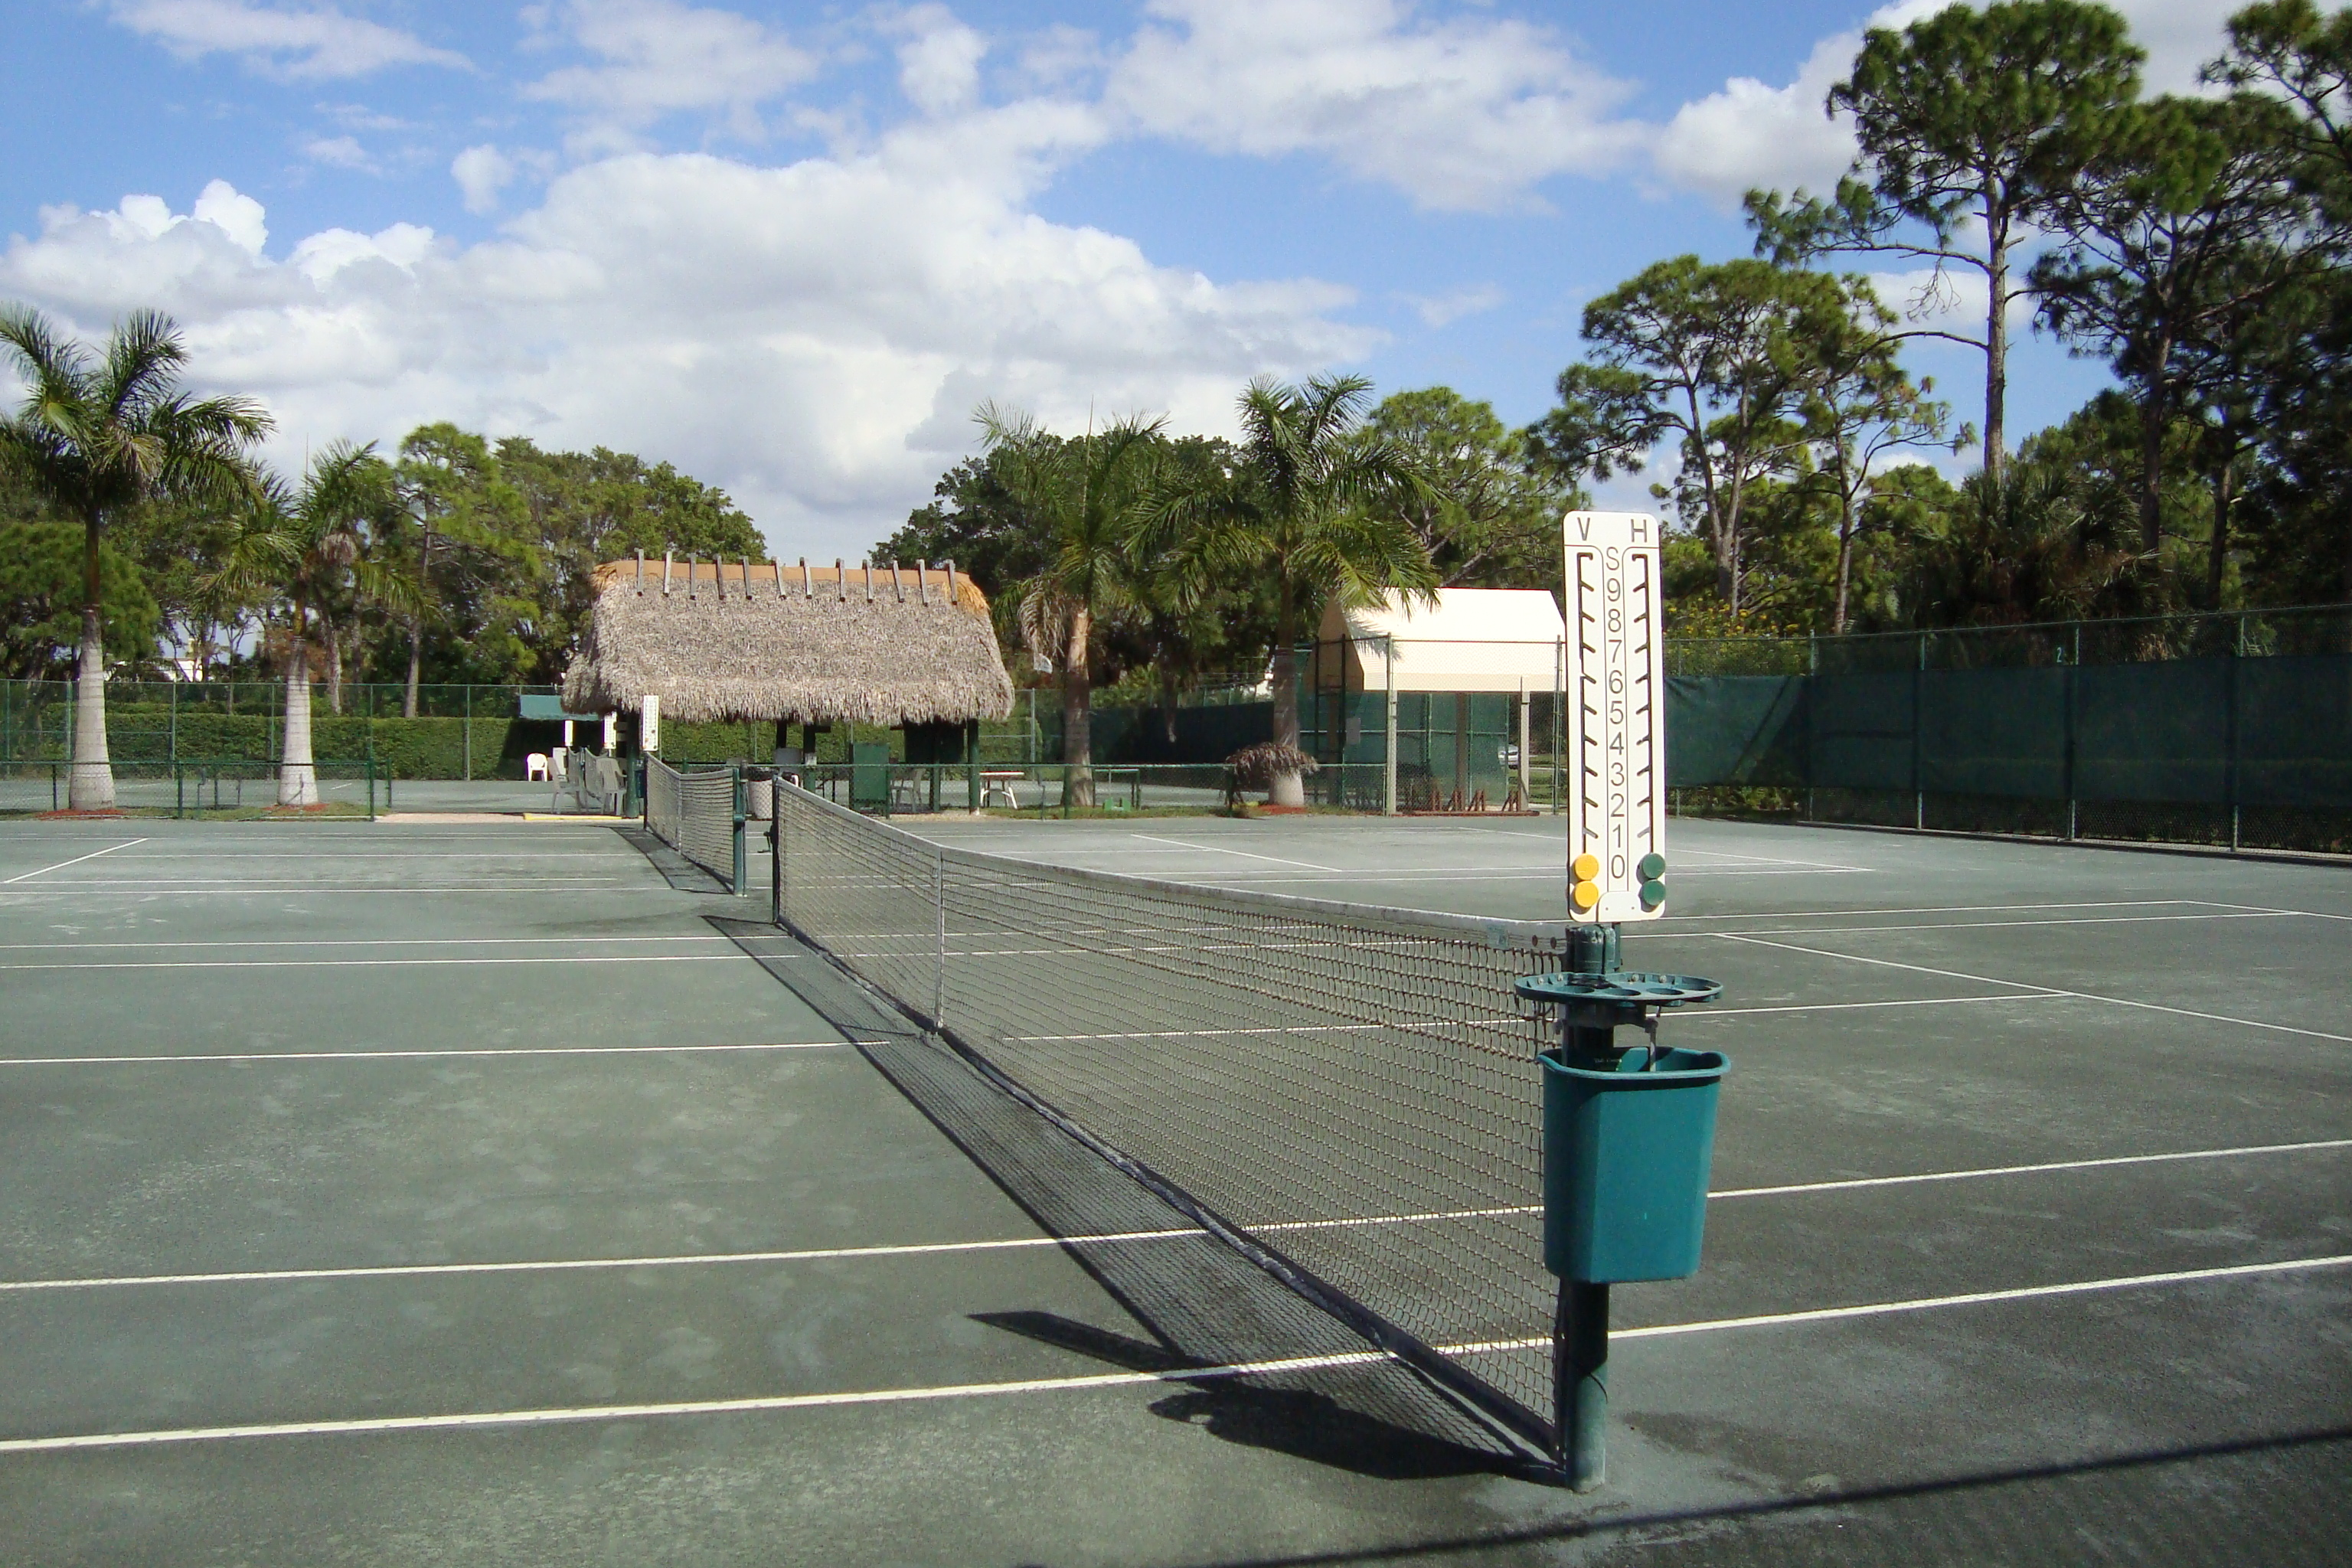 Tennis courts at Bay Forest in Naples, Florida.